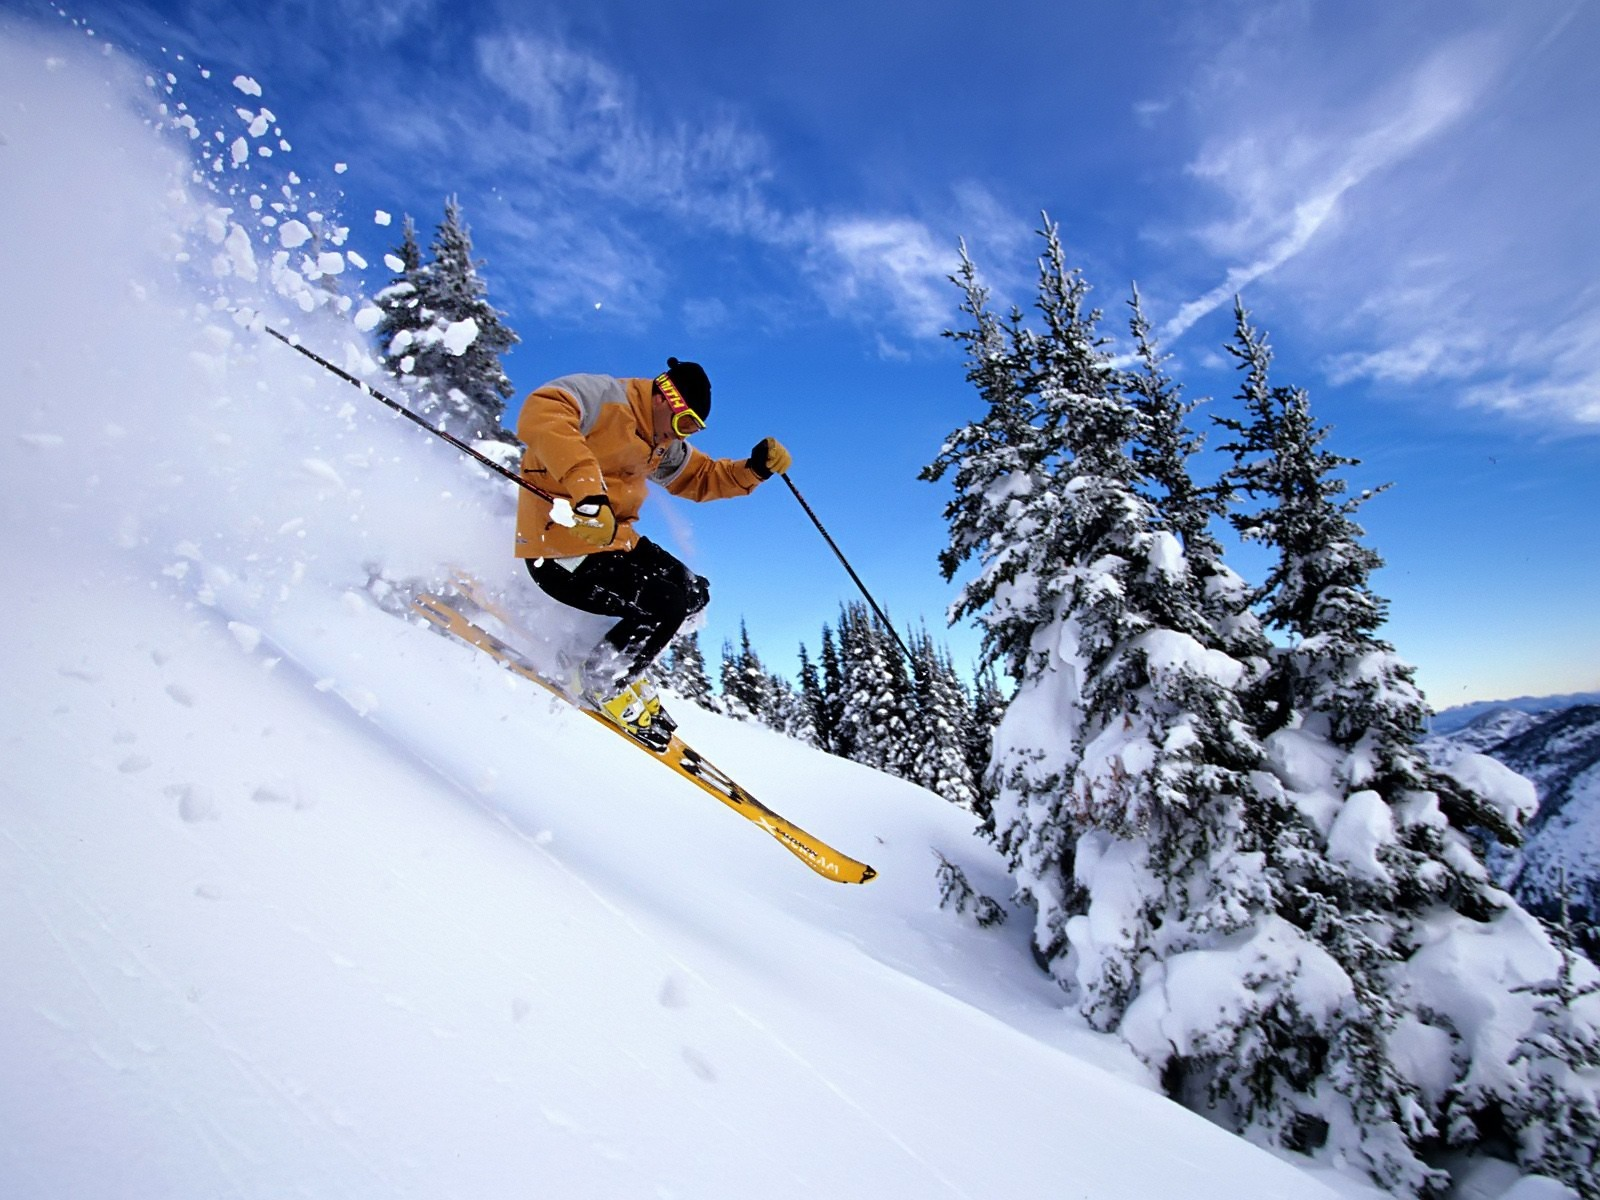 Skiing Wallpaper Ski Wallpaper Ski Sports Wallpapers In Jpg Format For Free Download